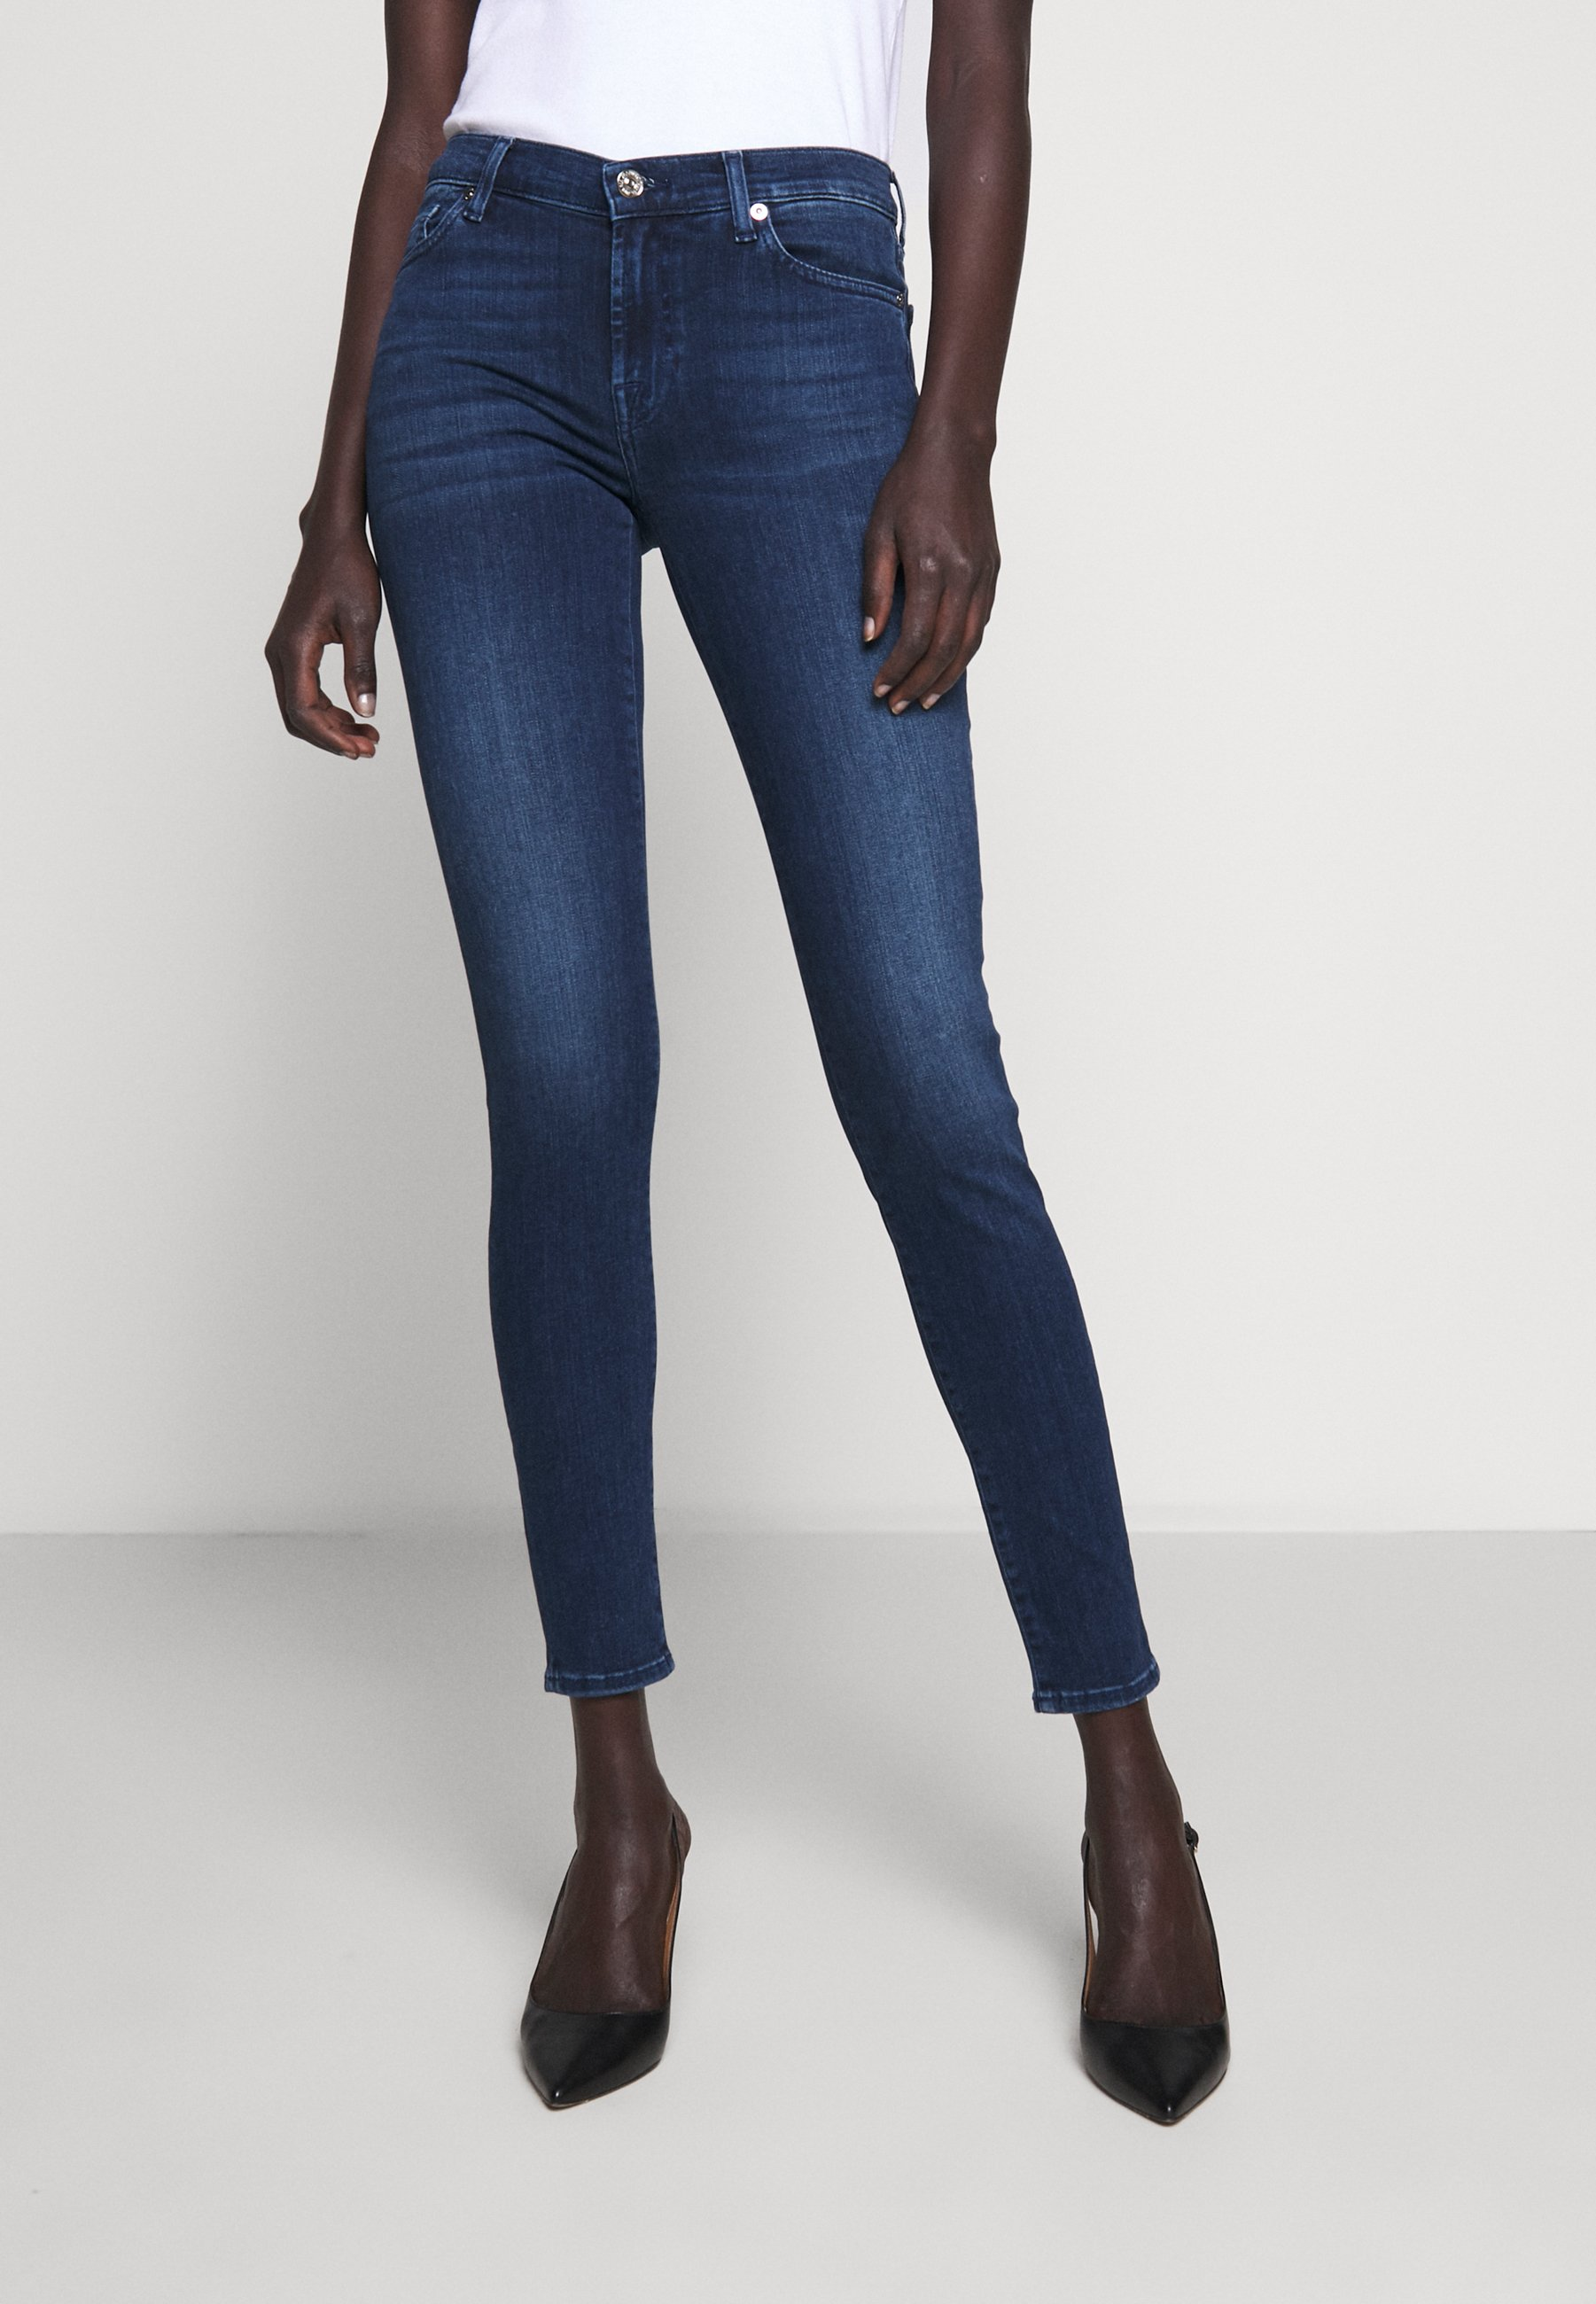 7 for all mankind Jeans Skinny - dark blue - Jeans Femme zZi97